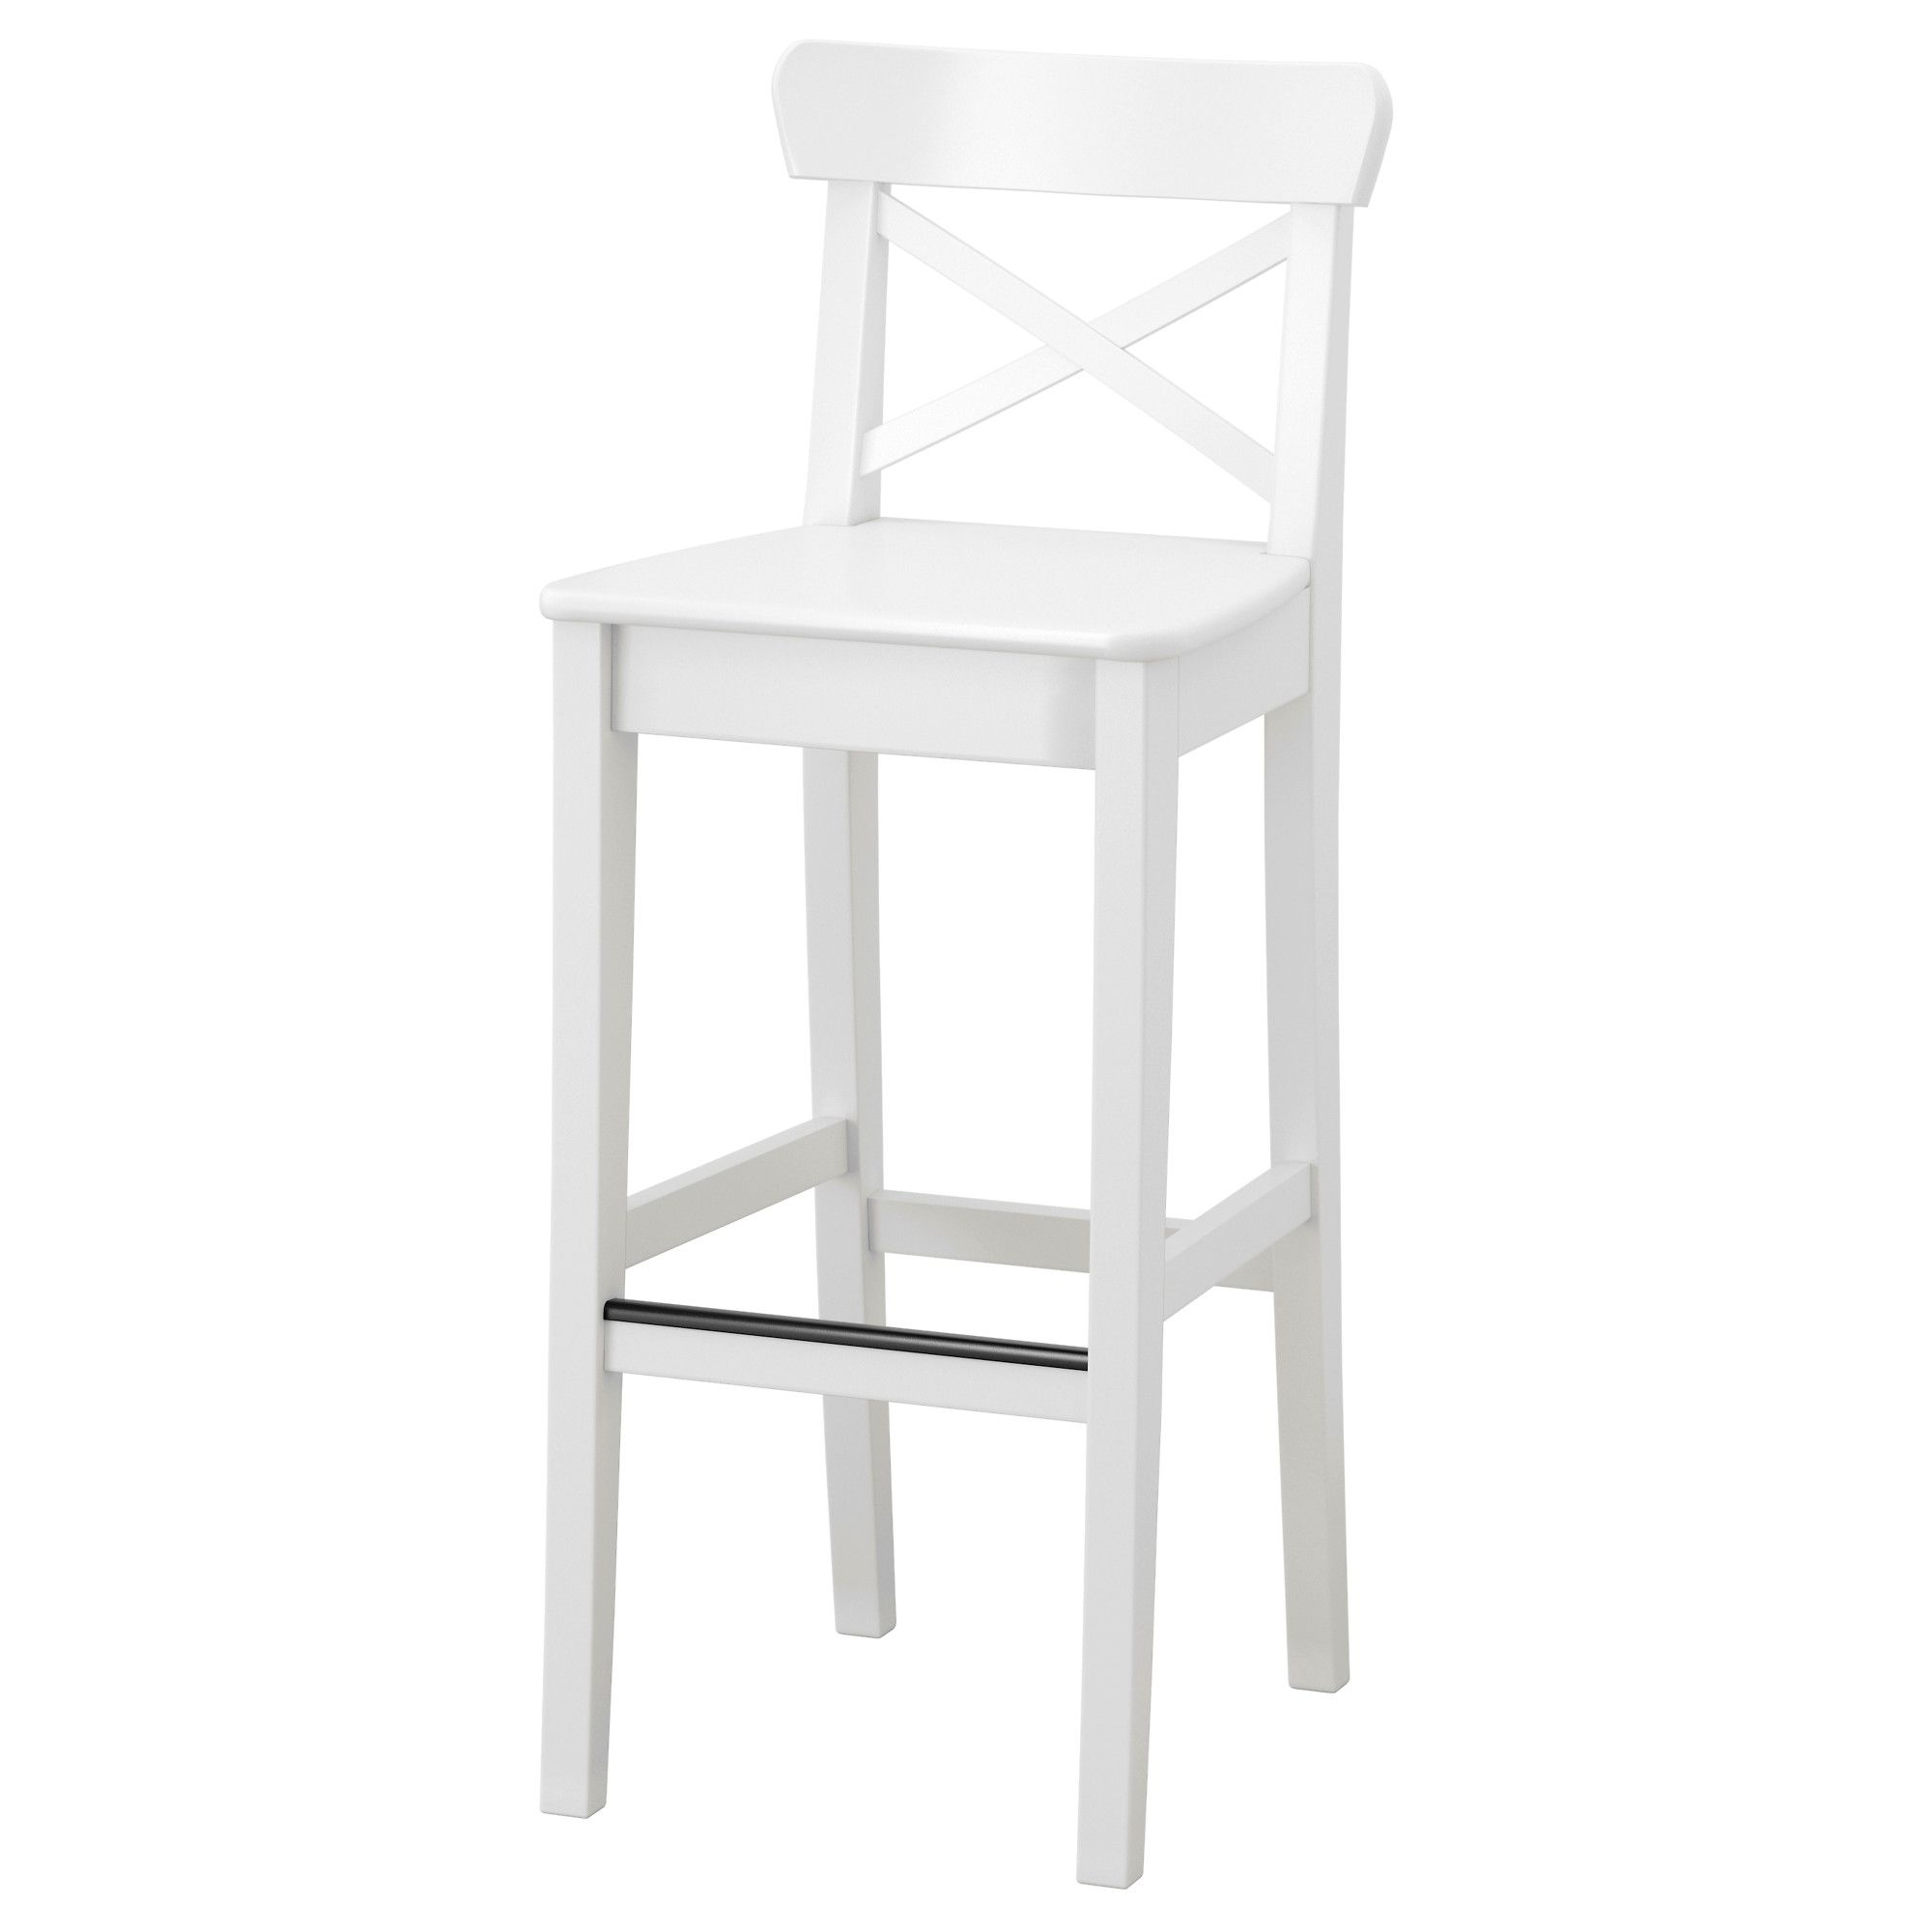 Ingolf Bar Stool With Backrest White 29 1 8 Ikea In 2020 White Bar Stools Ikea Barstools Ikea Bar